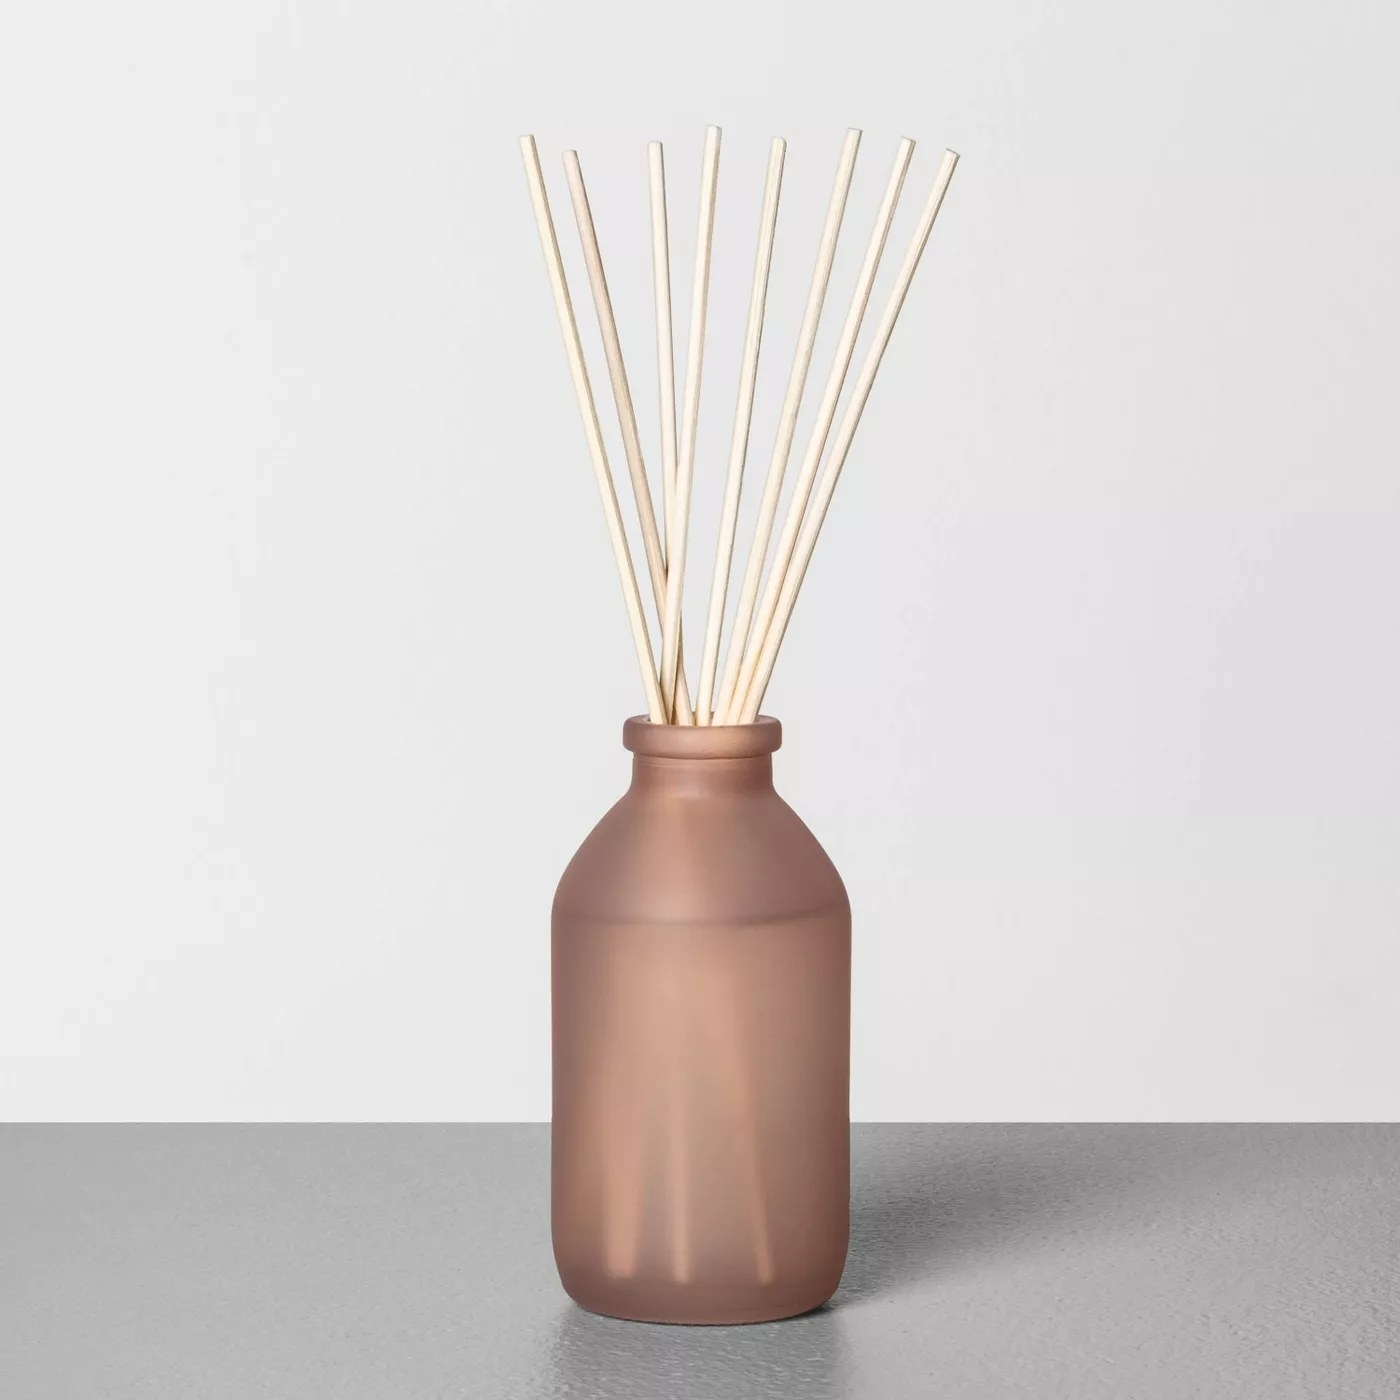 The diffuser with several reeds